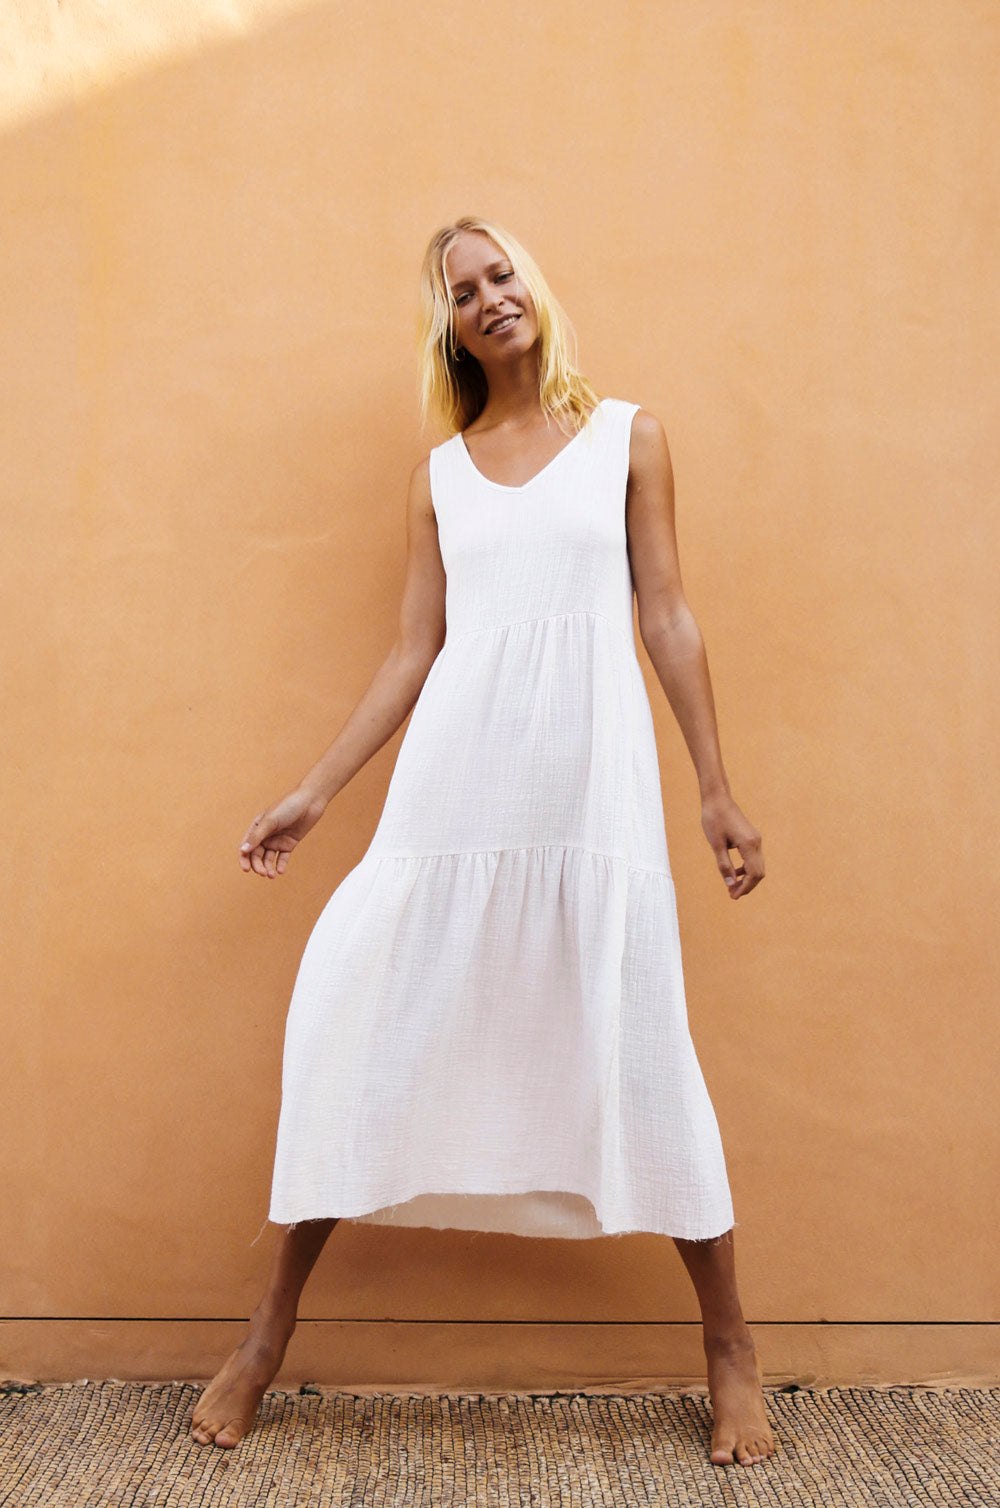 SERENGETI Dress - off-white cotton